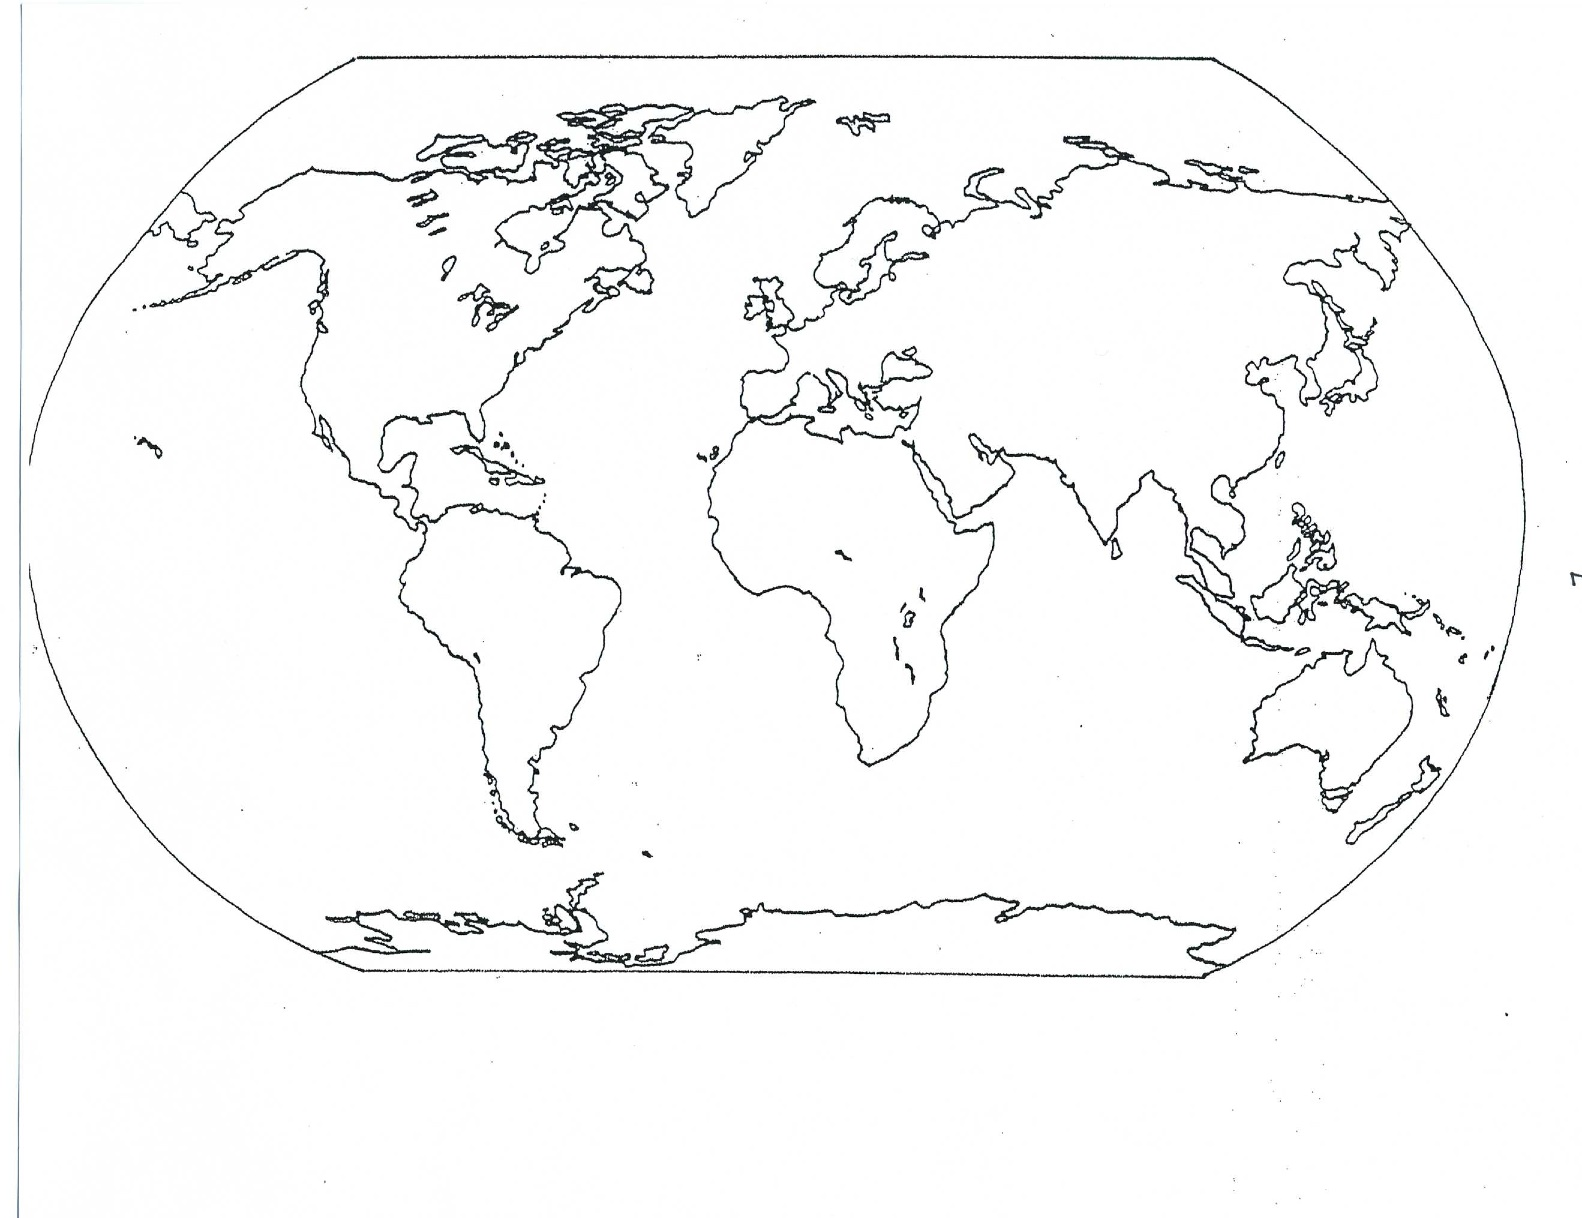 World Map Continents Blank Commonpenceco - Map showing continents and oceans